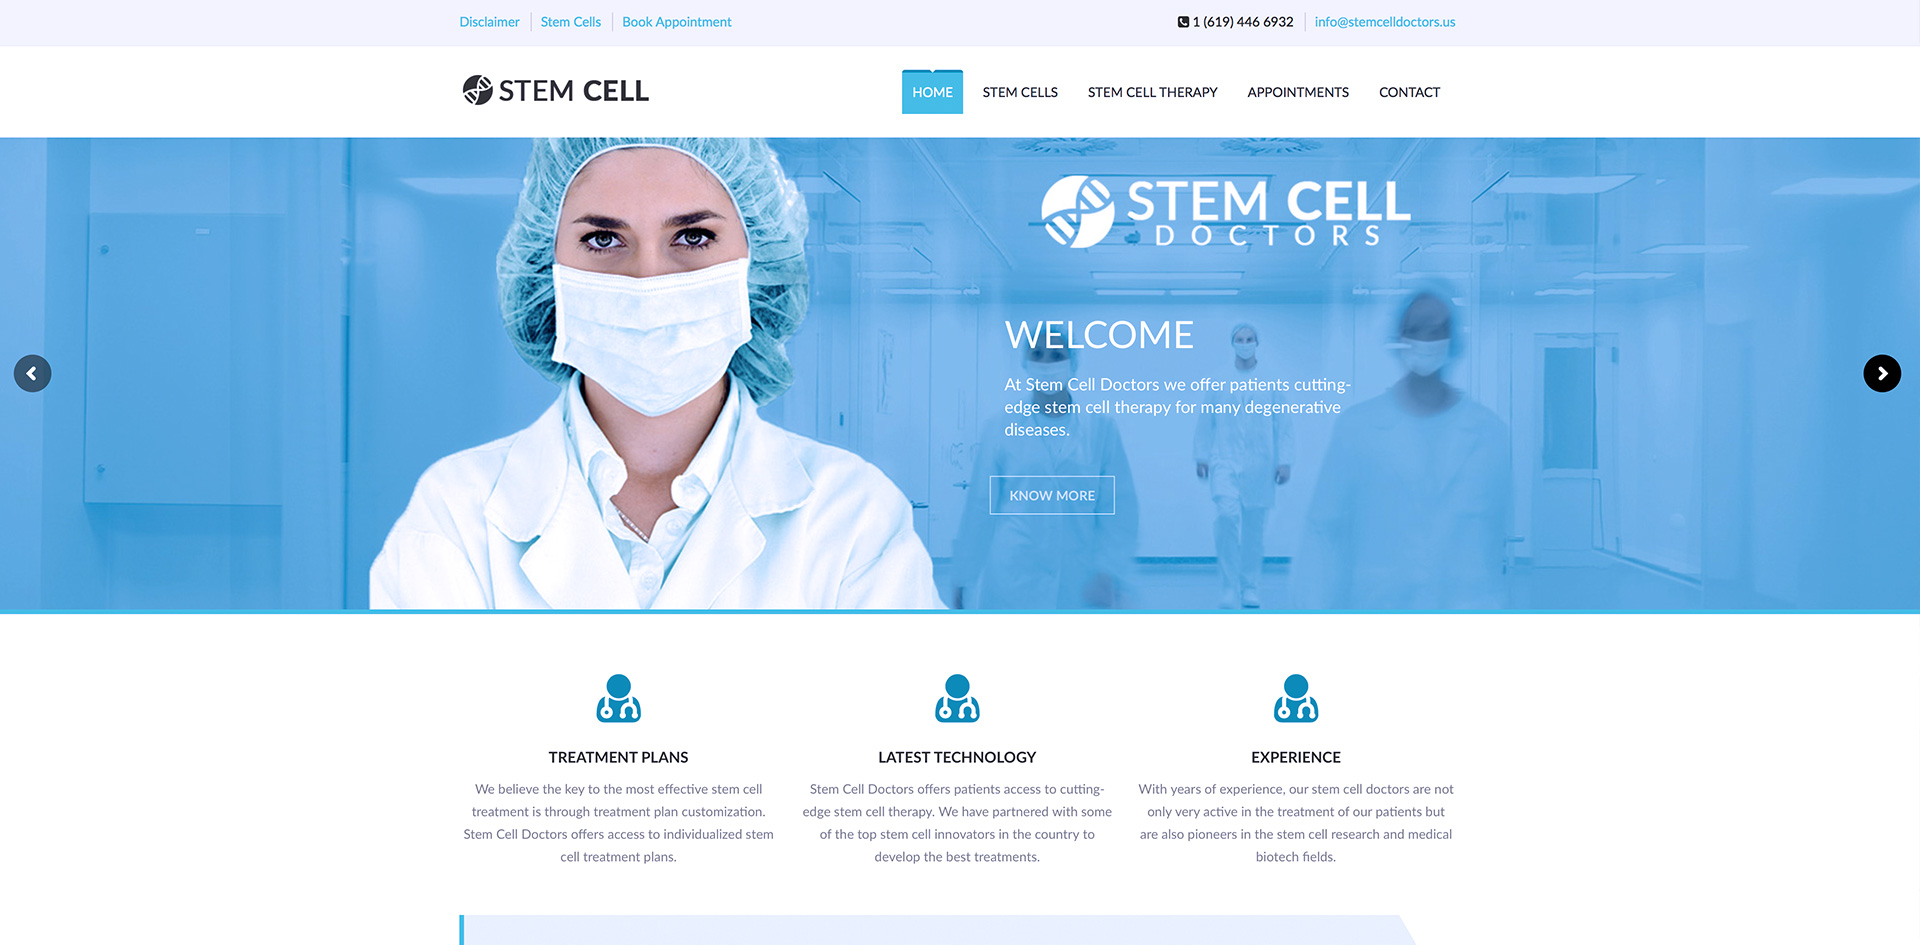 Stem Cell Doctors in Mexico